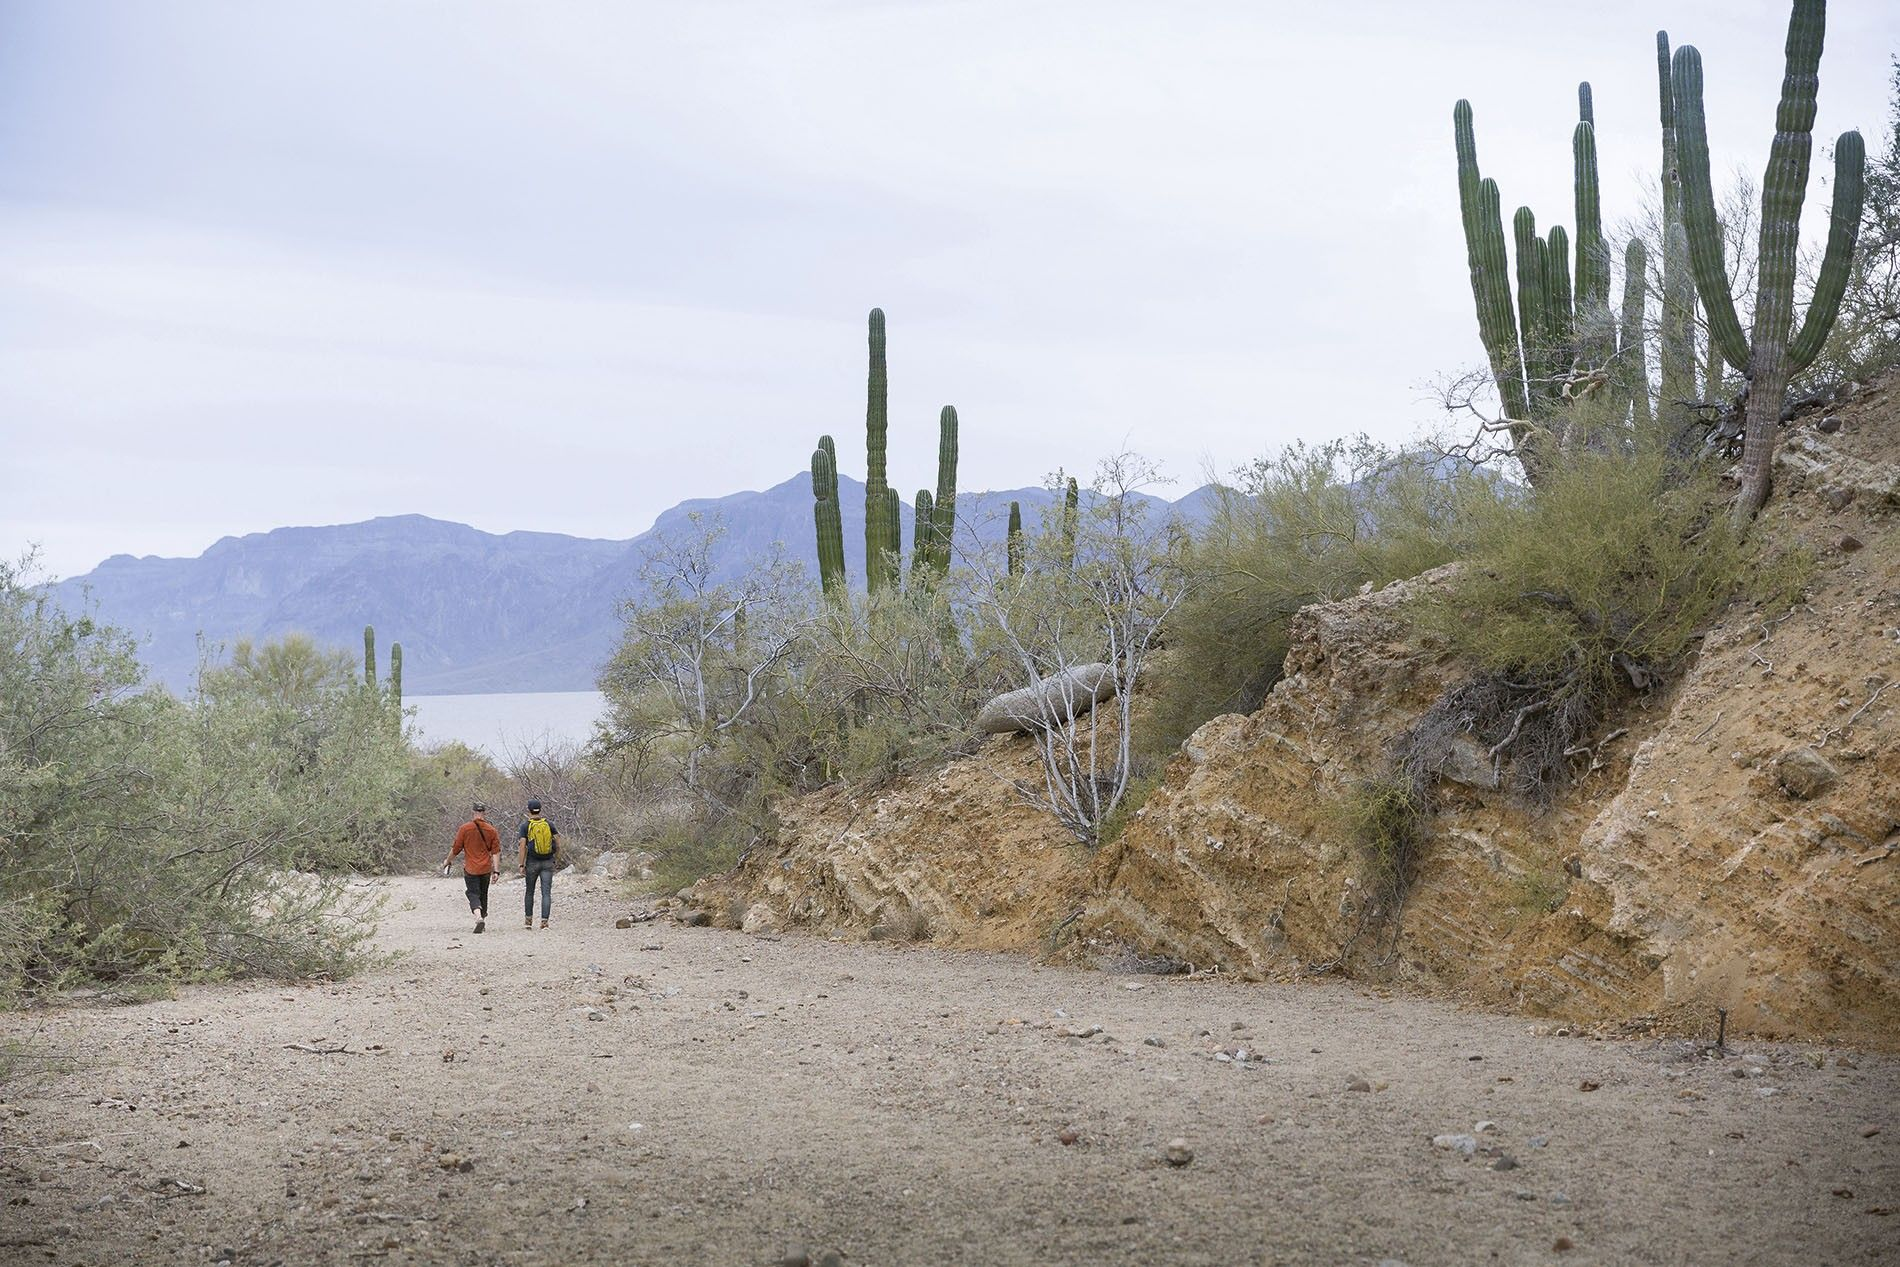 Walking back to the beach on San Jose Island in the Sea of Cortez.